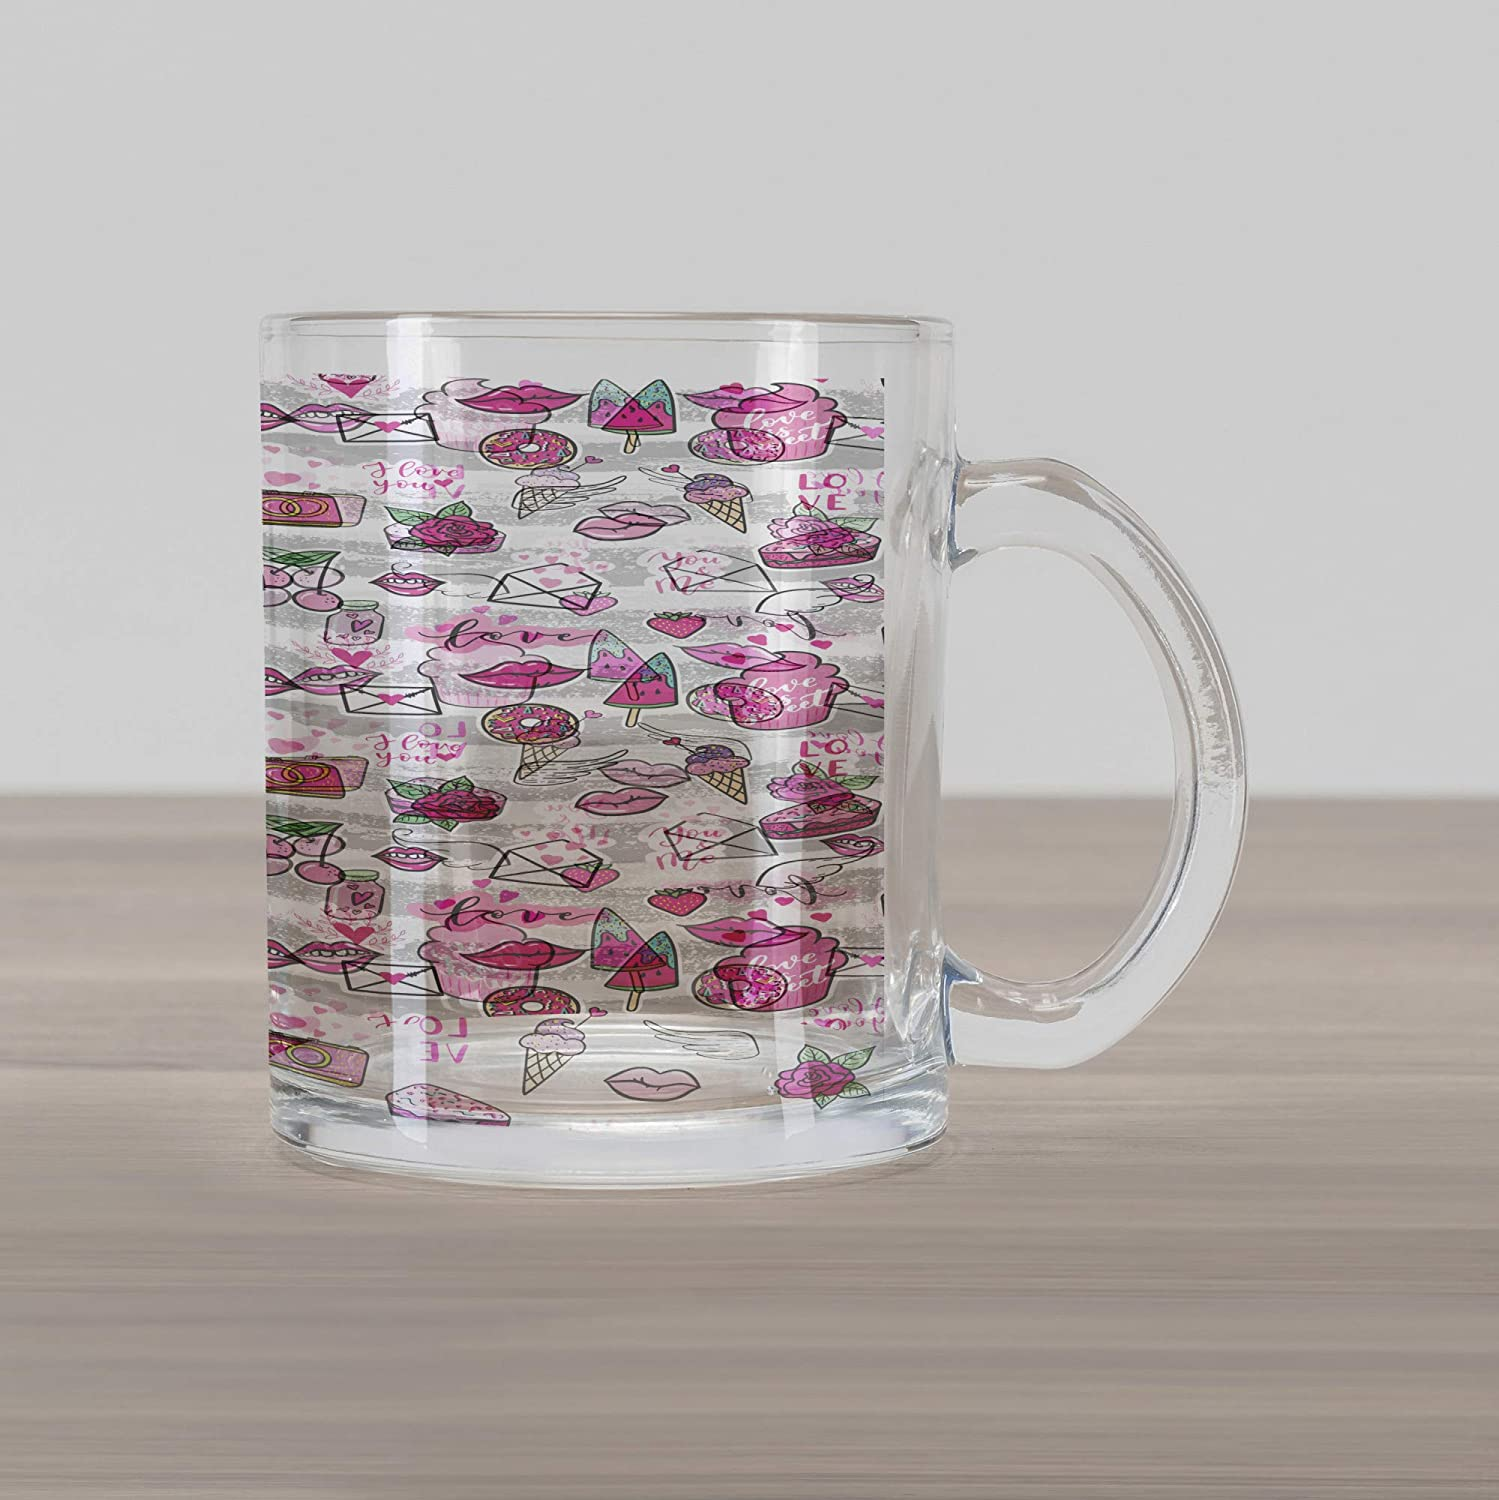 7ae8b5f8e40 Ambesonne Emoji Glass Mug, Memphis Style Doodle Lip Star Strawberry Speech  Bubble on Stripe Pattern, Printed Clear Glass Coffee Mug Cup for Beverages  Water ...